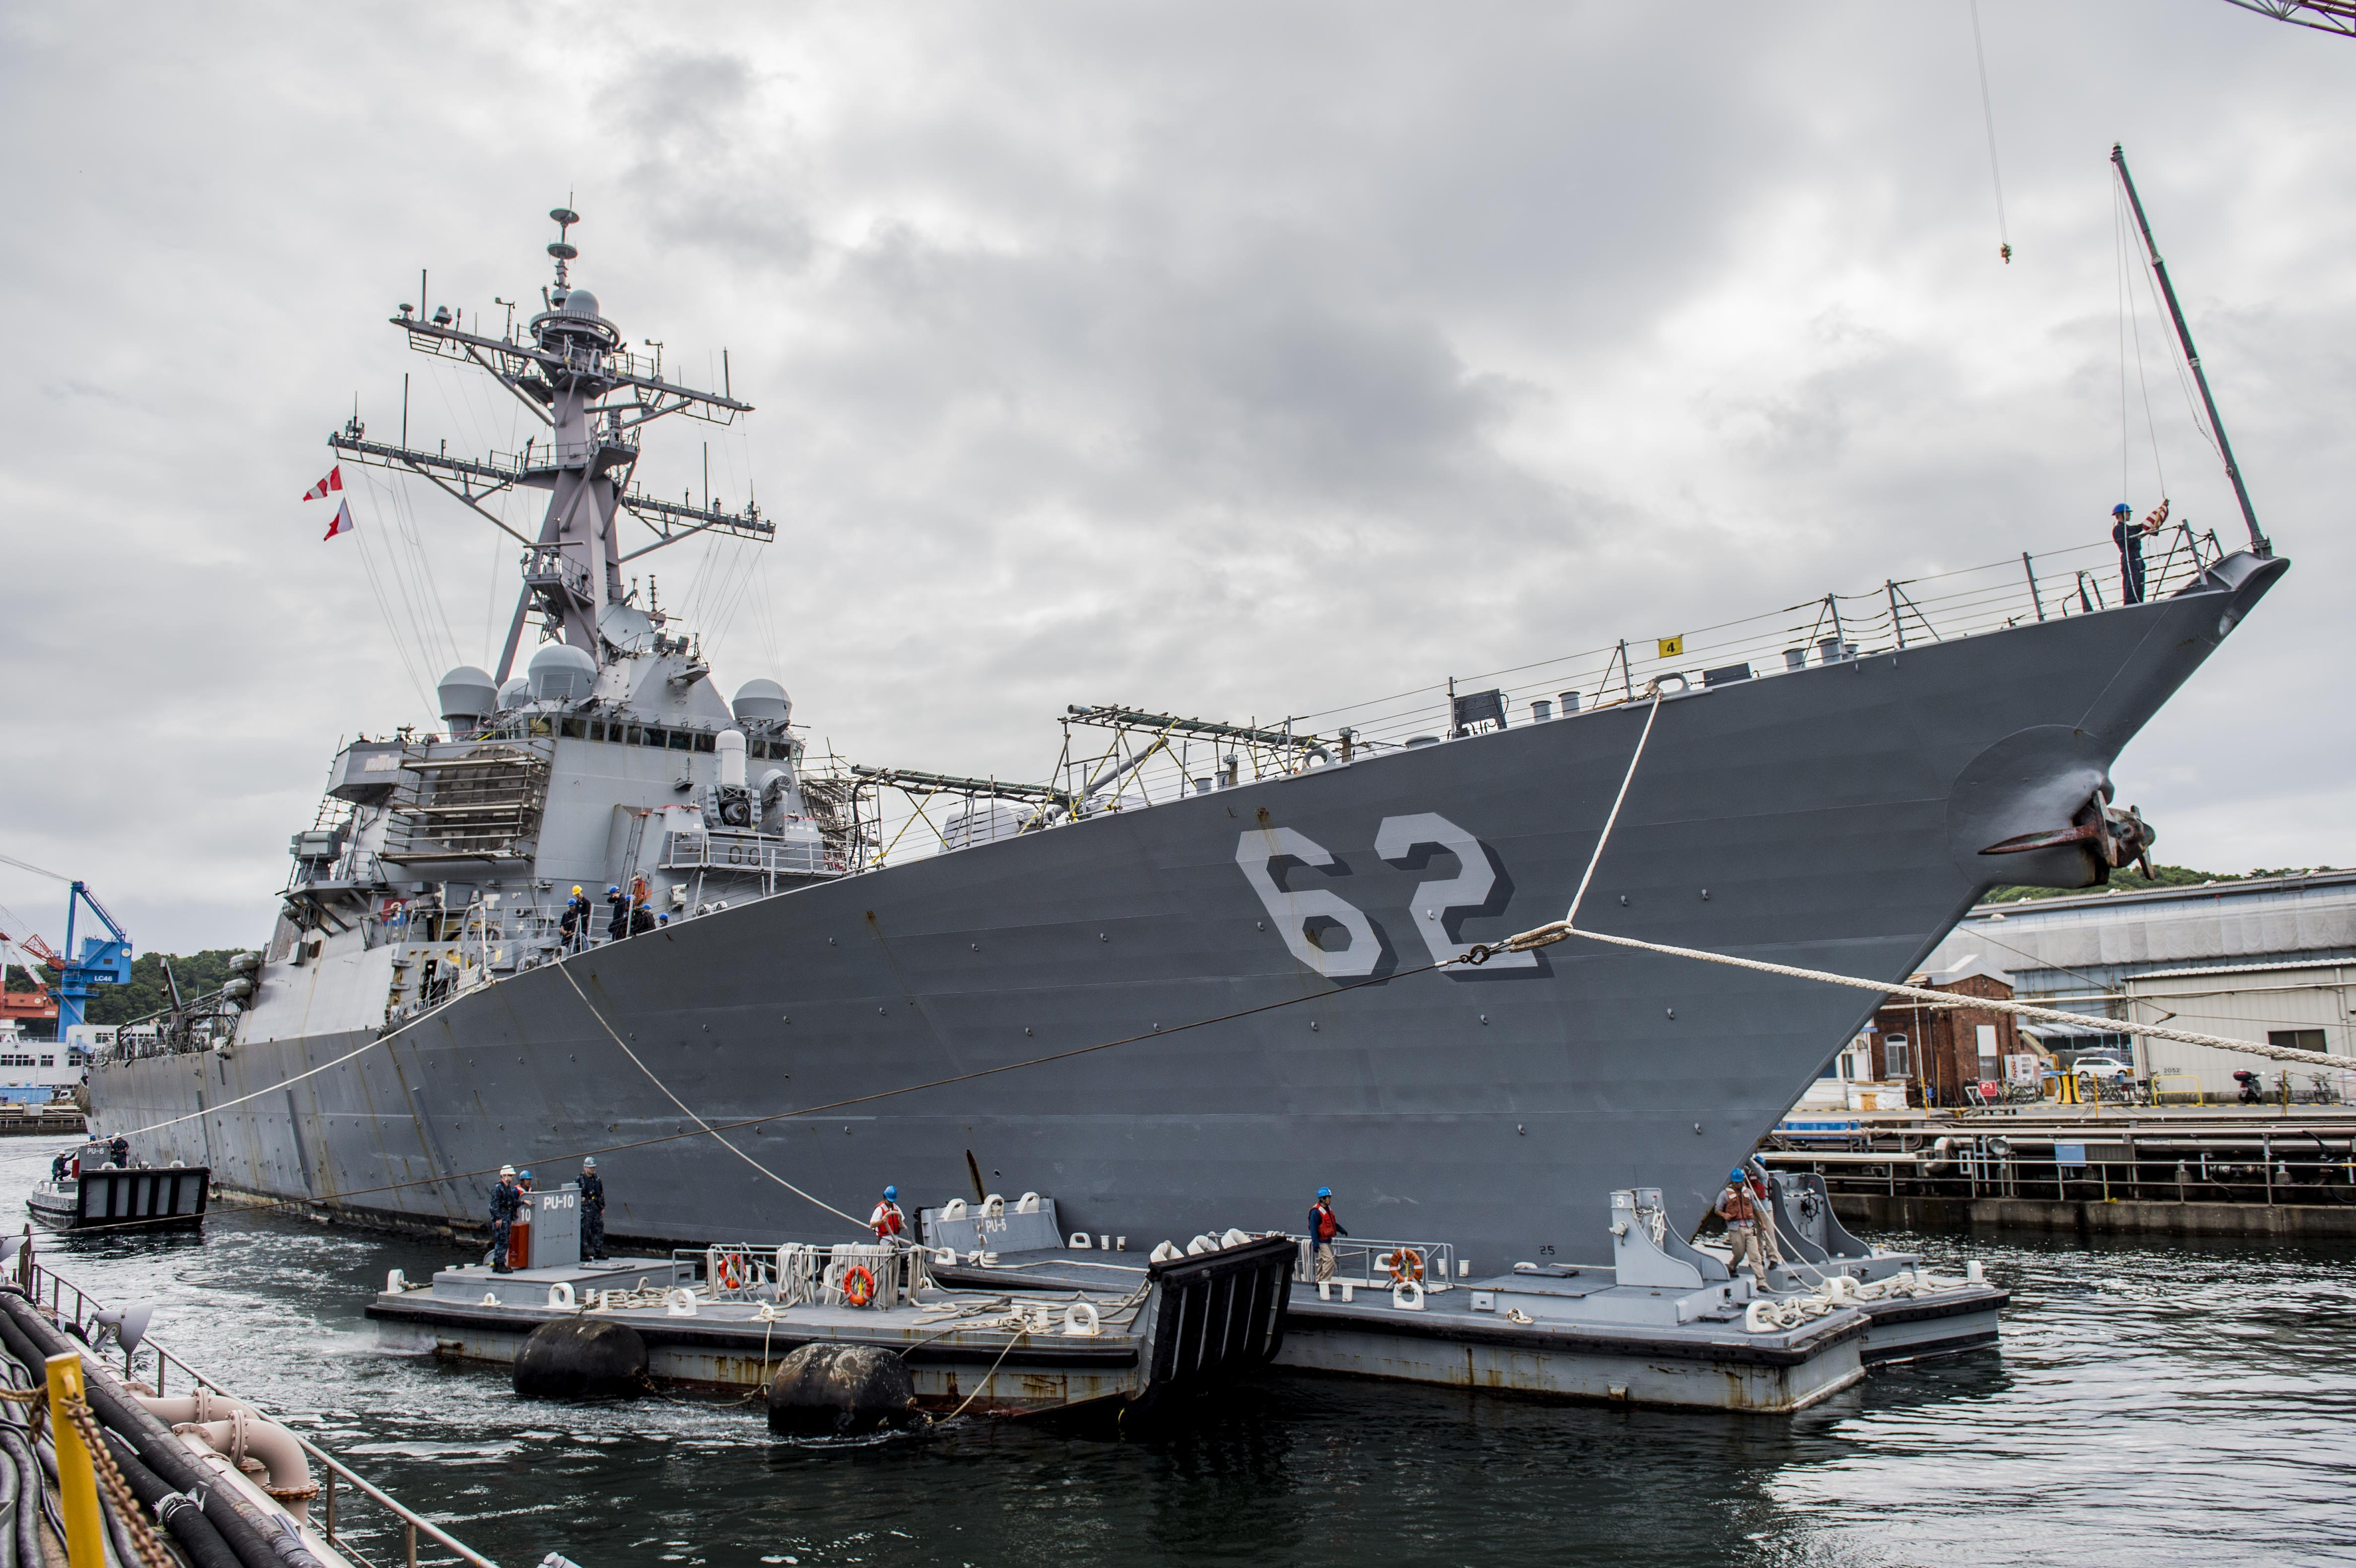 The Arleigh Burke-class guided-missile destroyer USS Fitzgerald (DDG 62) pulls into Dry Dock 5 at Naval Ship Repair Facility and Japan Regional Maintenance Center (SRF JRMC) Yokosuka on June 15, 2016. US Navy photo.